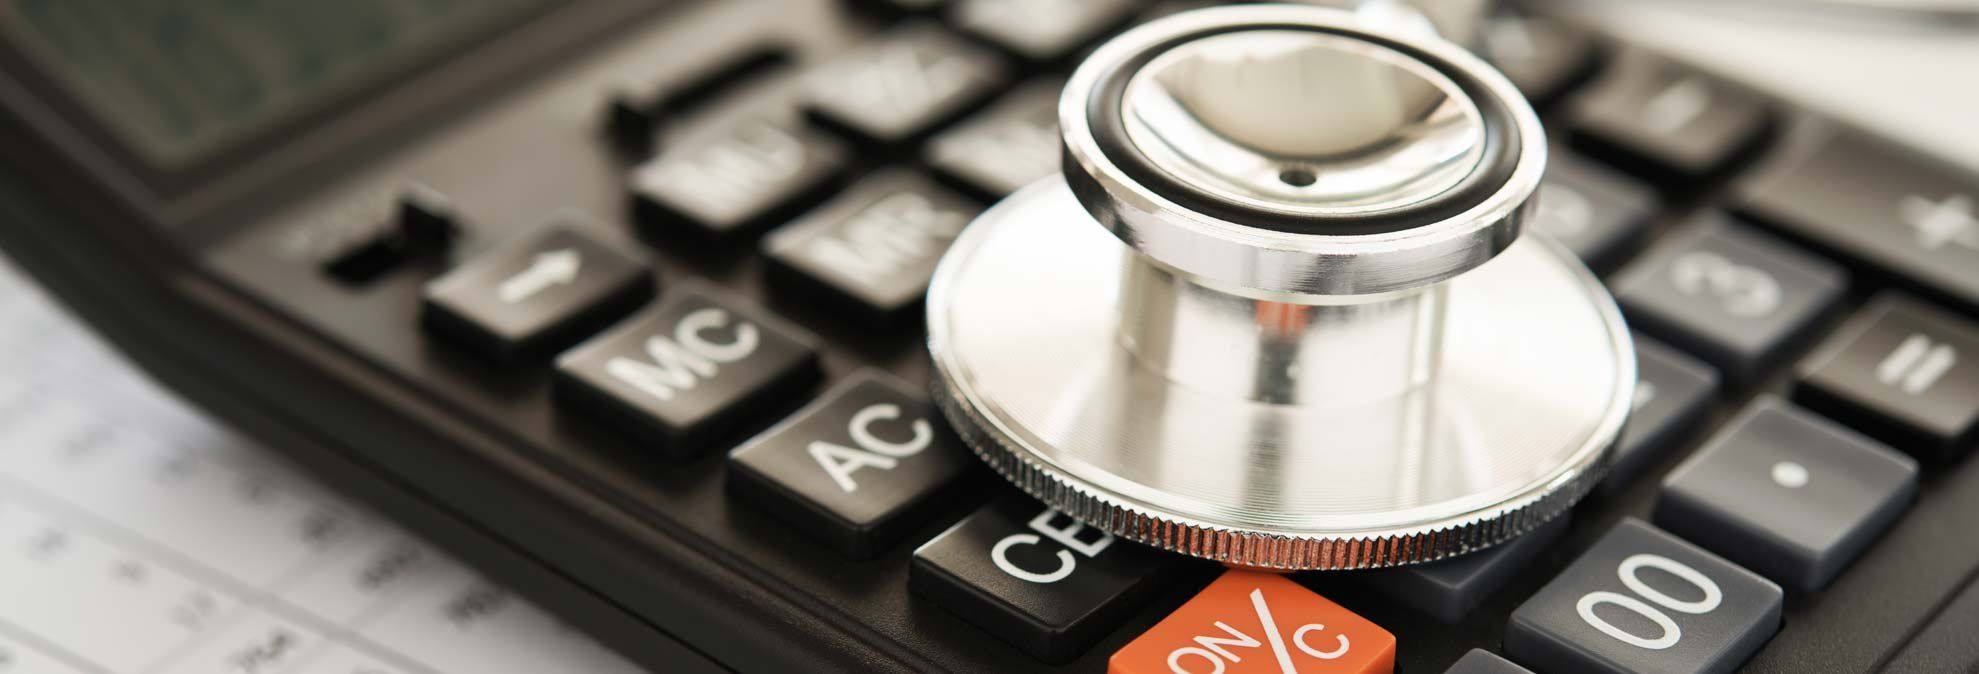 What to Do If You Can't Afford Health Insurance - Consumer ...